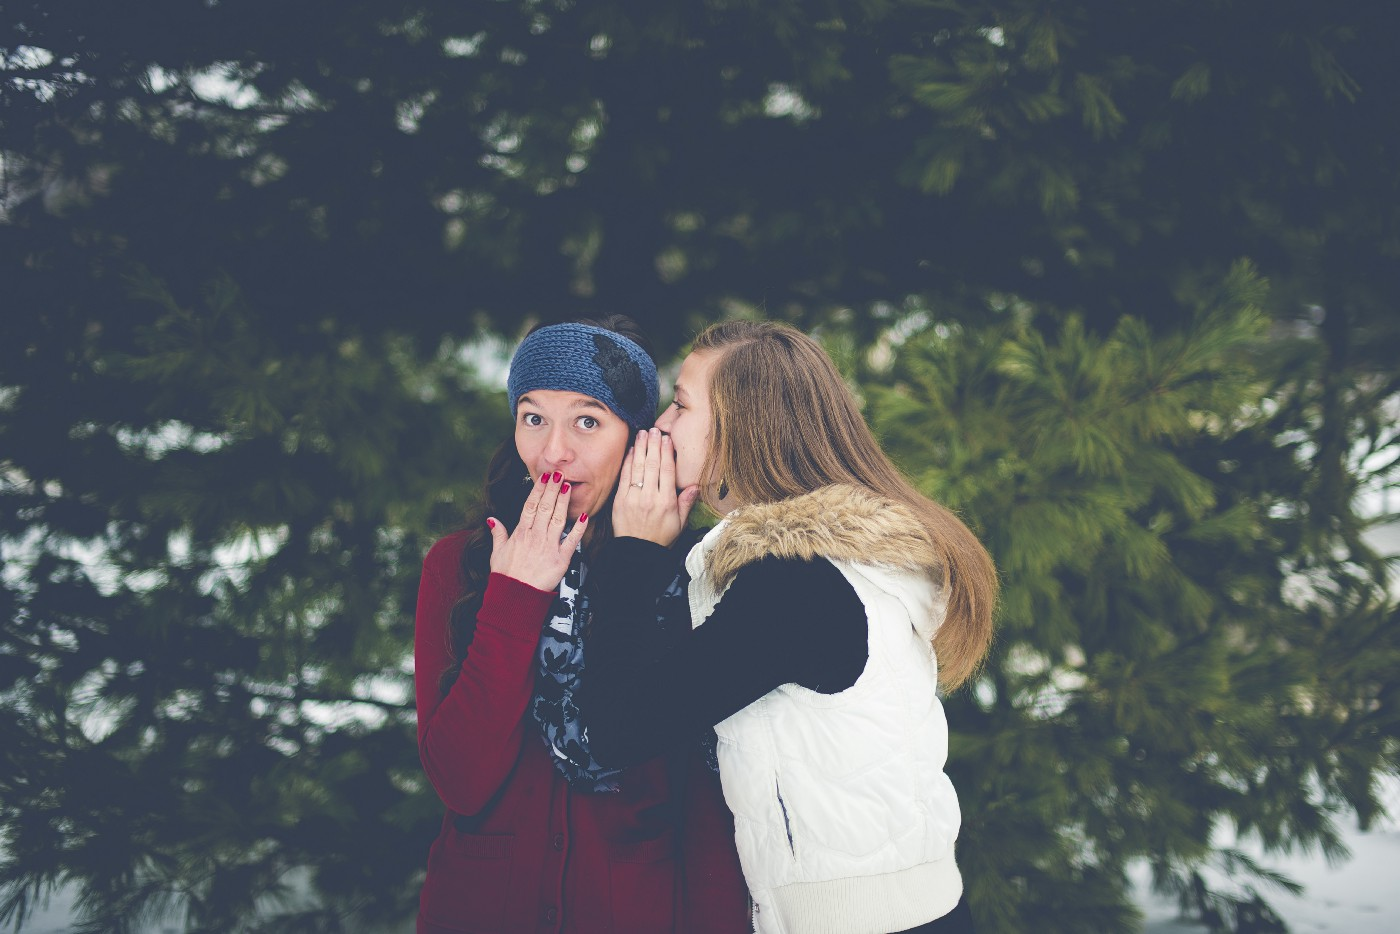 A woman telling another woman a secret